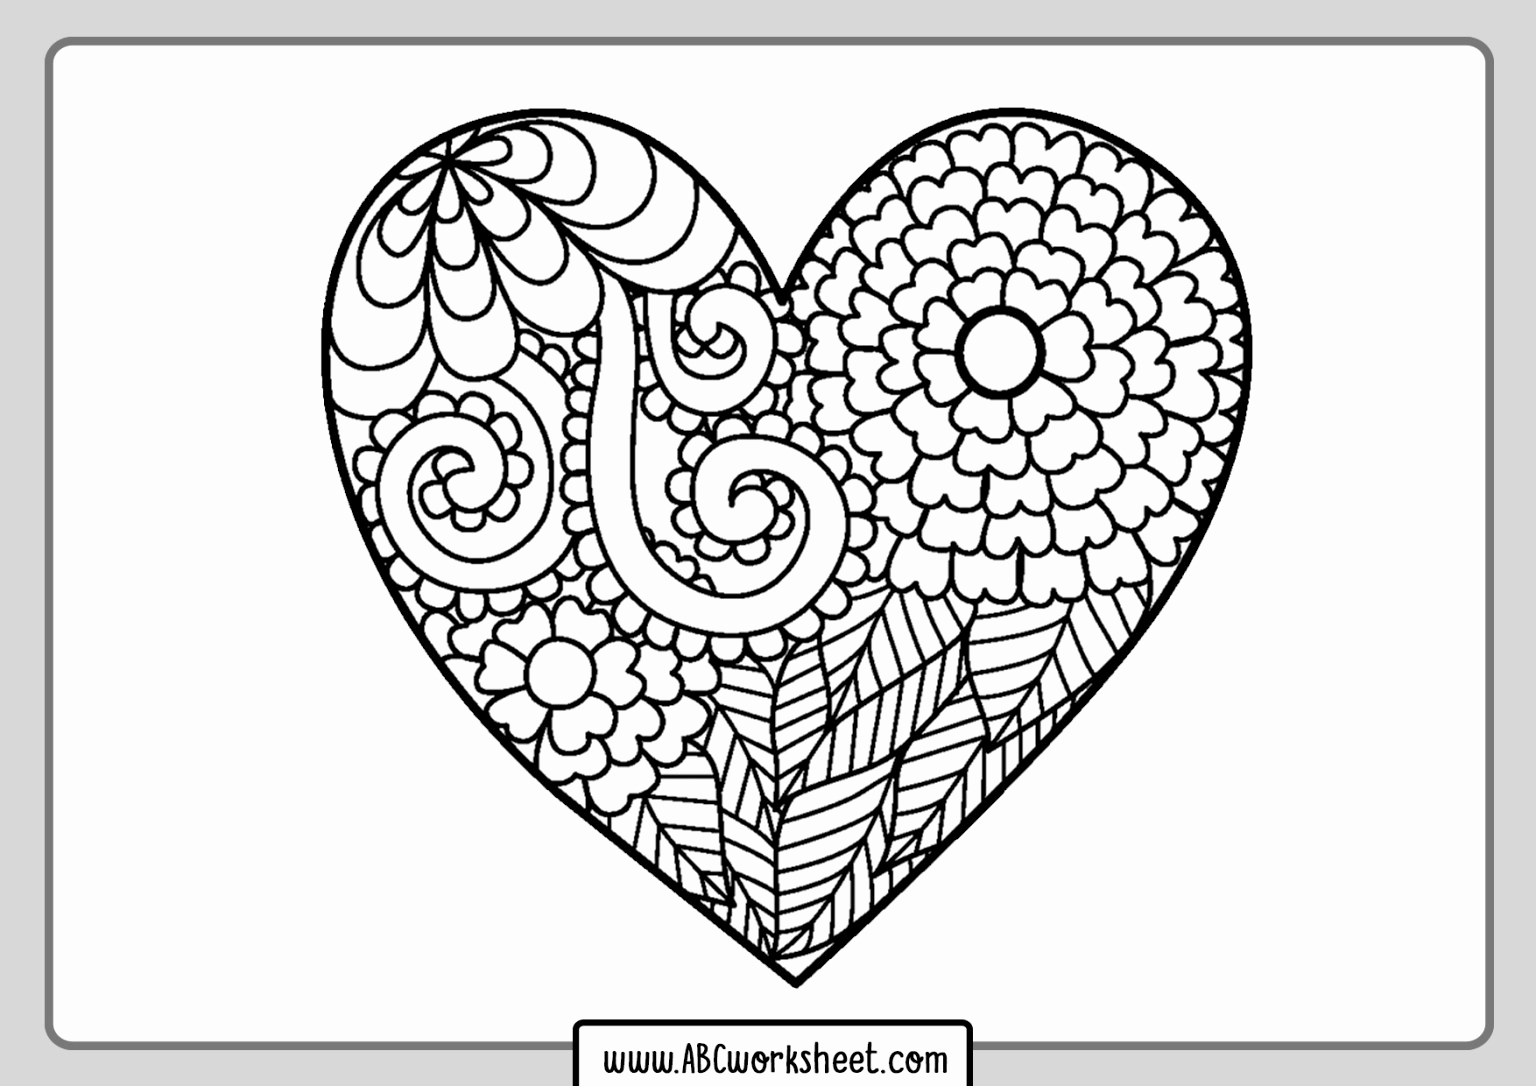 Heart Coloring Worksheet Beautiful Printable Heart Coloring Pages